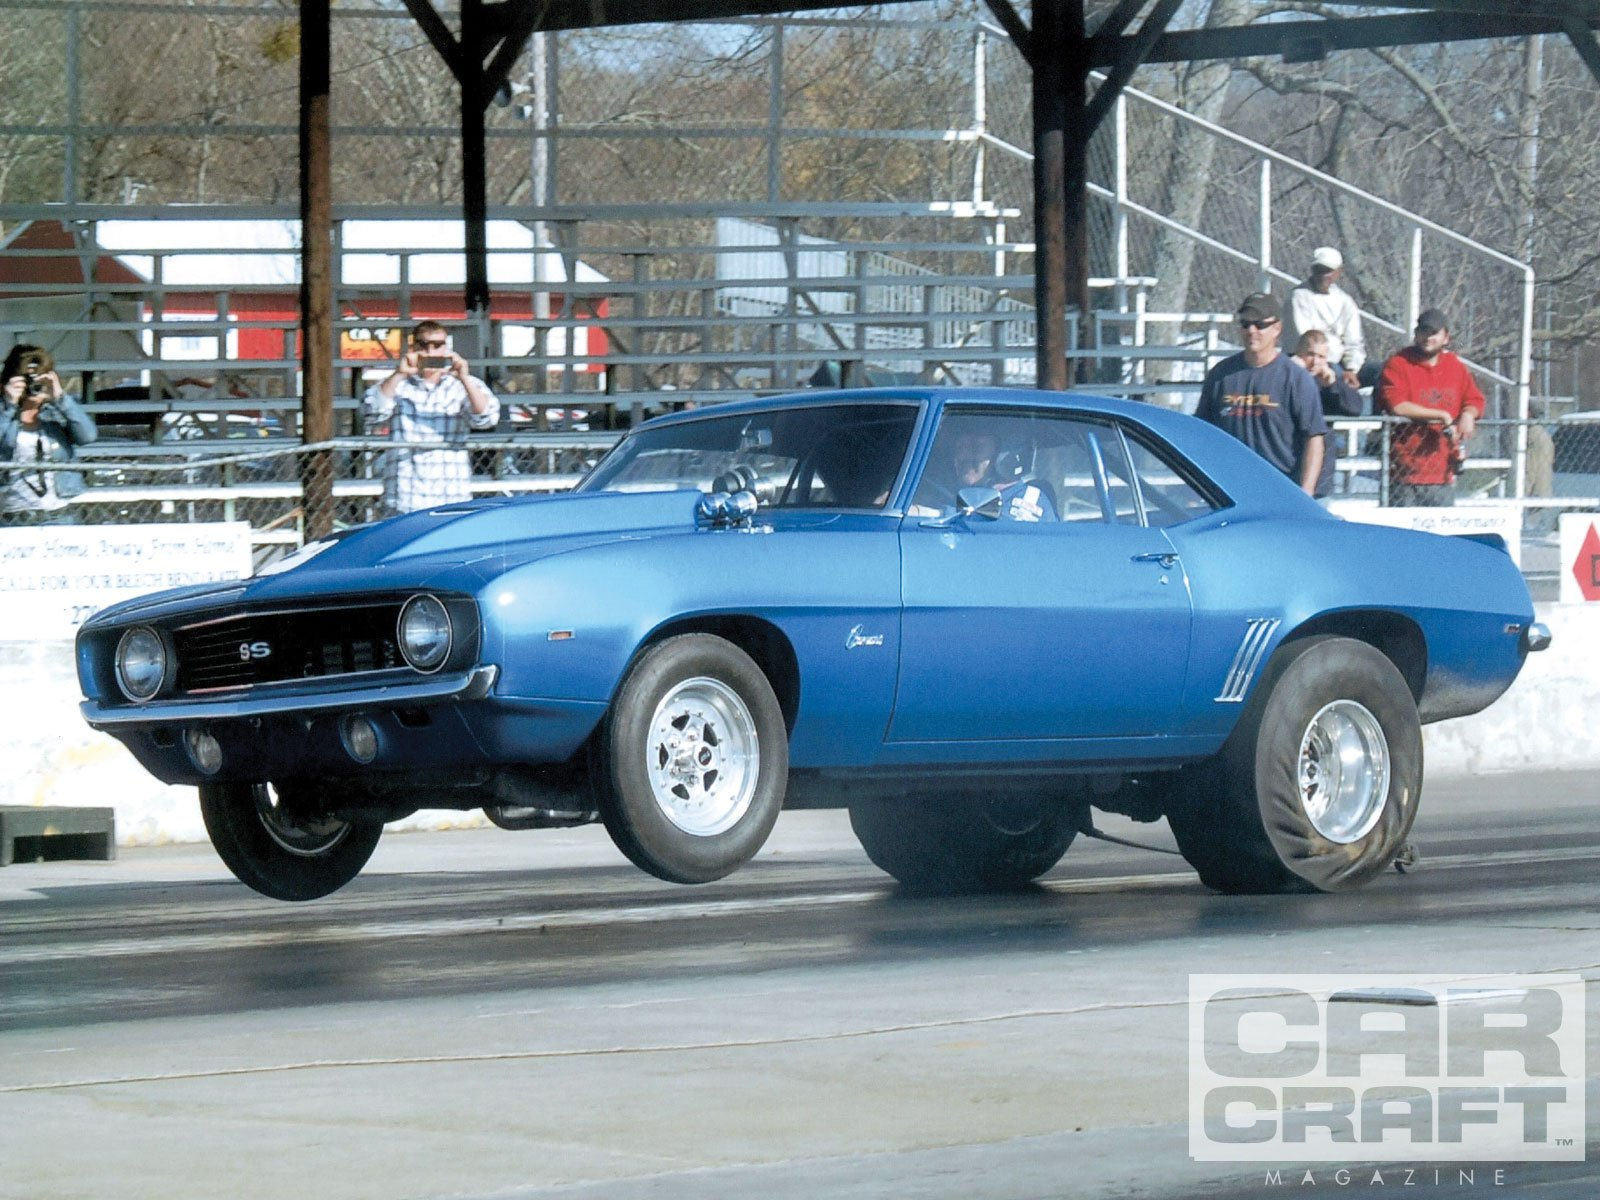 Free download Blue 1969 Camaro Ss Wallpaper 1969 chevy